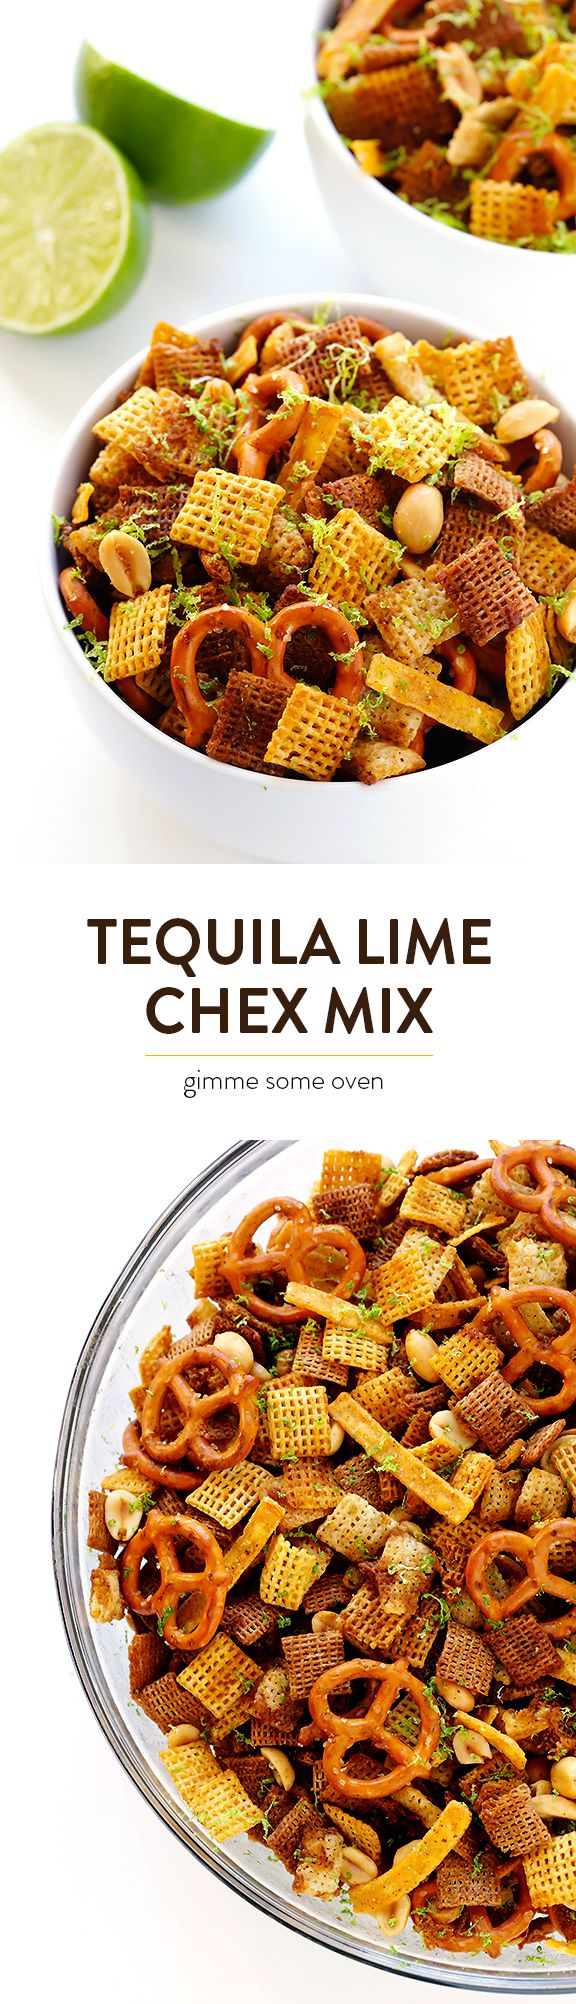 Tequila Lime Chex Mix -- a delicious party mix kicked up a notch with some fresh lime and tequila! | gimmesomeoven.com